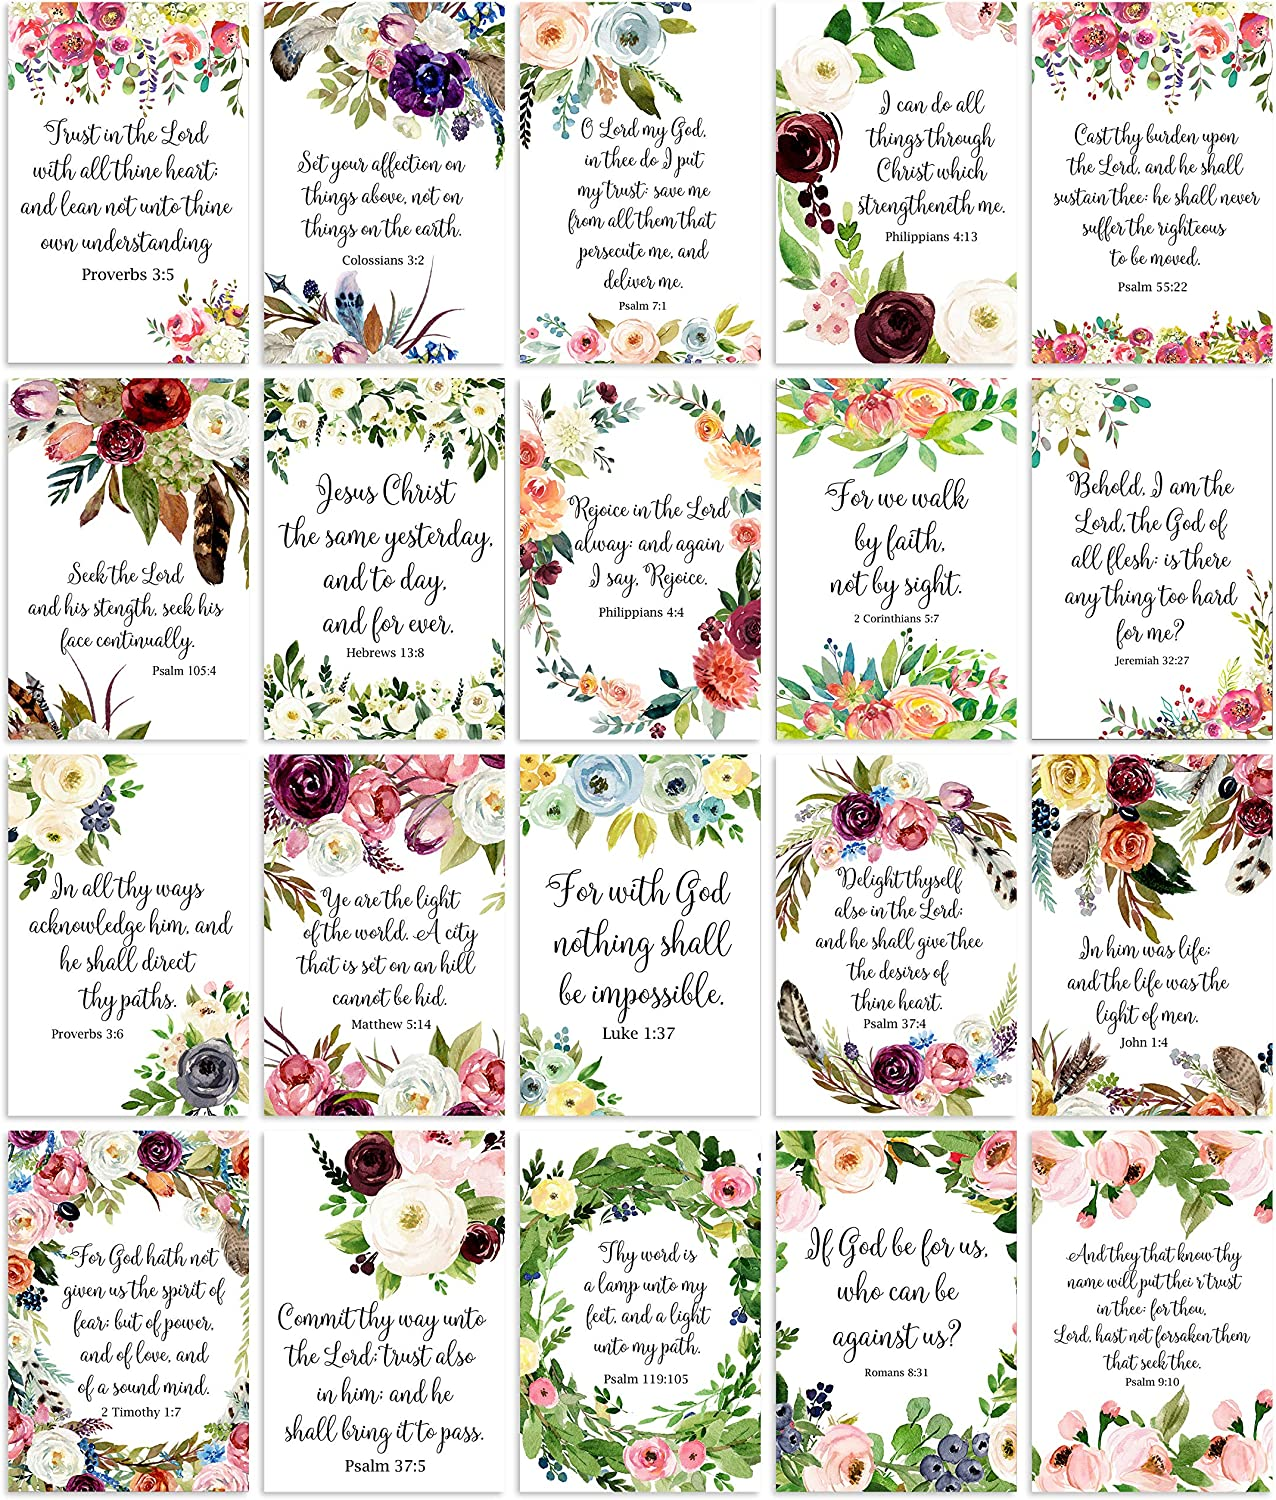 Christian Wall Art - Bible Verses for Home Church or Office Décor. Great Christian Gift. Ready to Frame. Inspiring & Encouraging Verses for All. 6 x 4 inch 20 mixed prints.